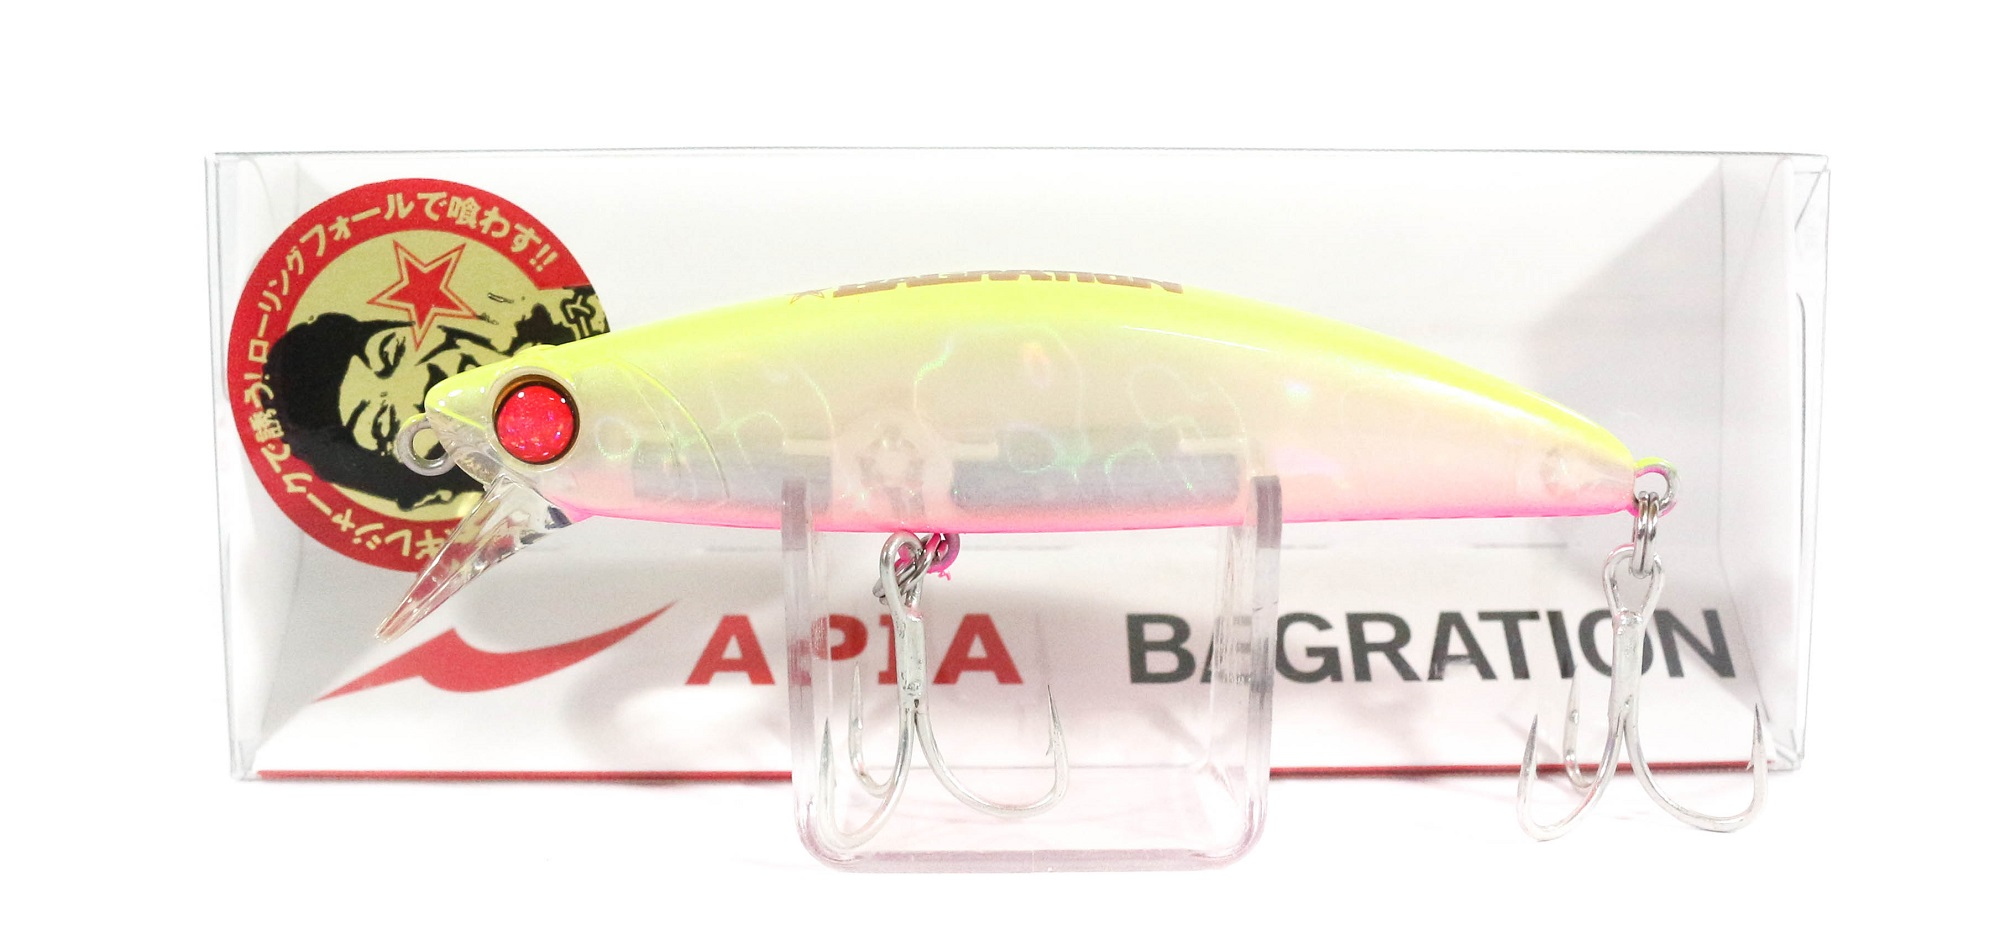 Apia Bagration 80 Sinking Lure 03 (5268)